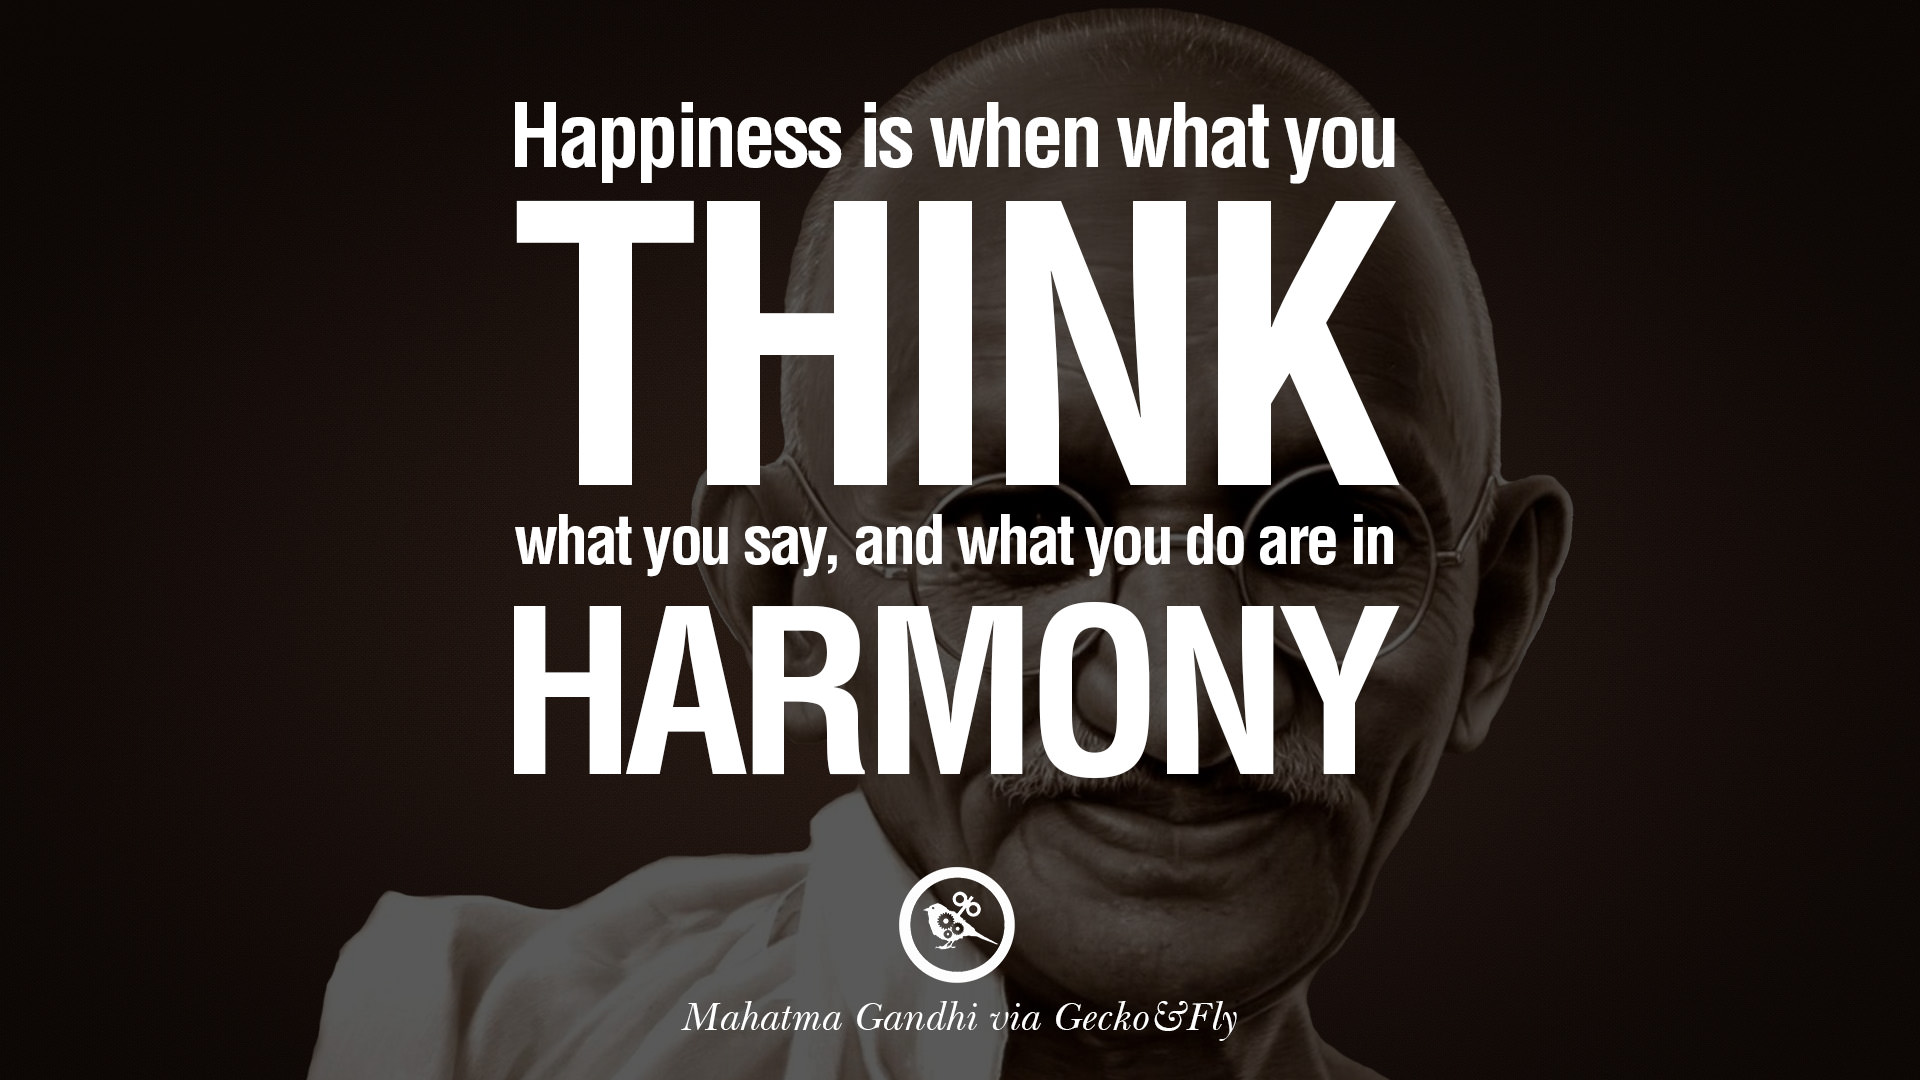 gandhi-quotes-03-5d9c85383fb7730896749c4059c371a9.jpg